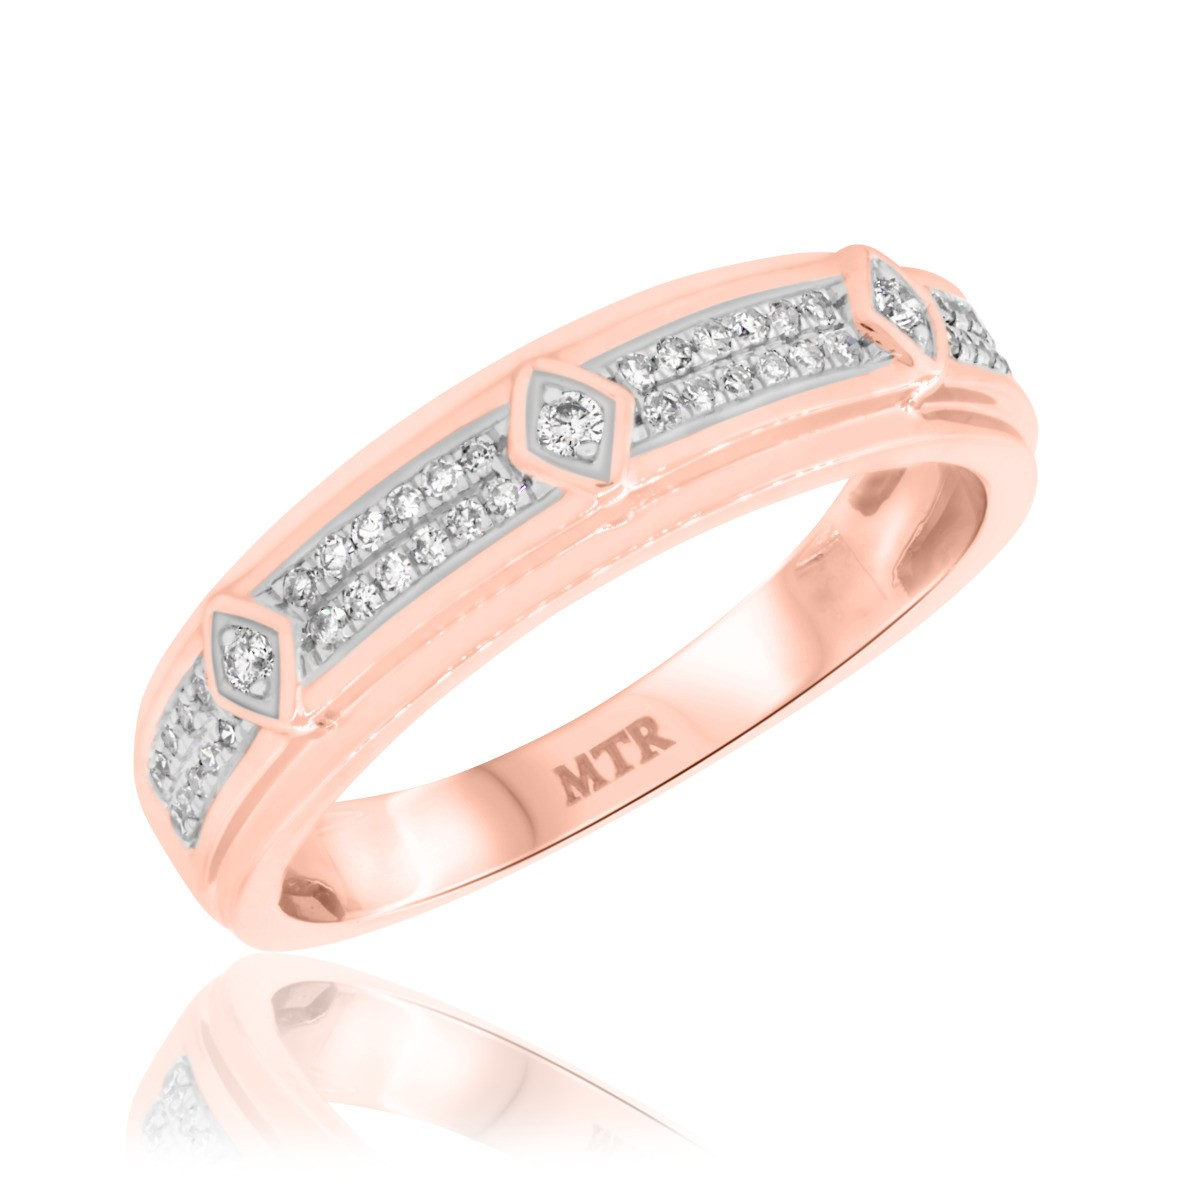 1/4 CT. T.W. Diamond Mens Wedding Band 14K Rose Gold